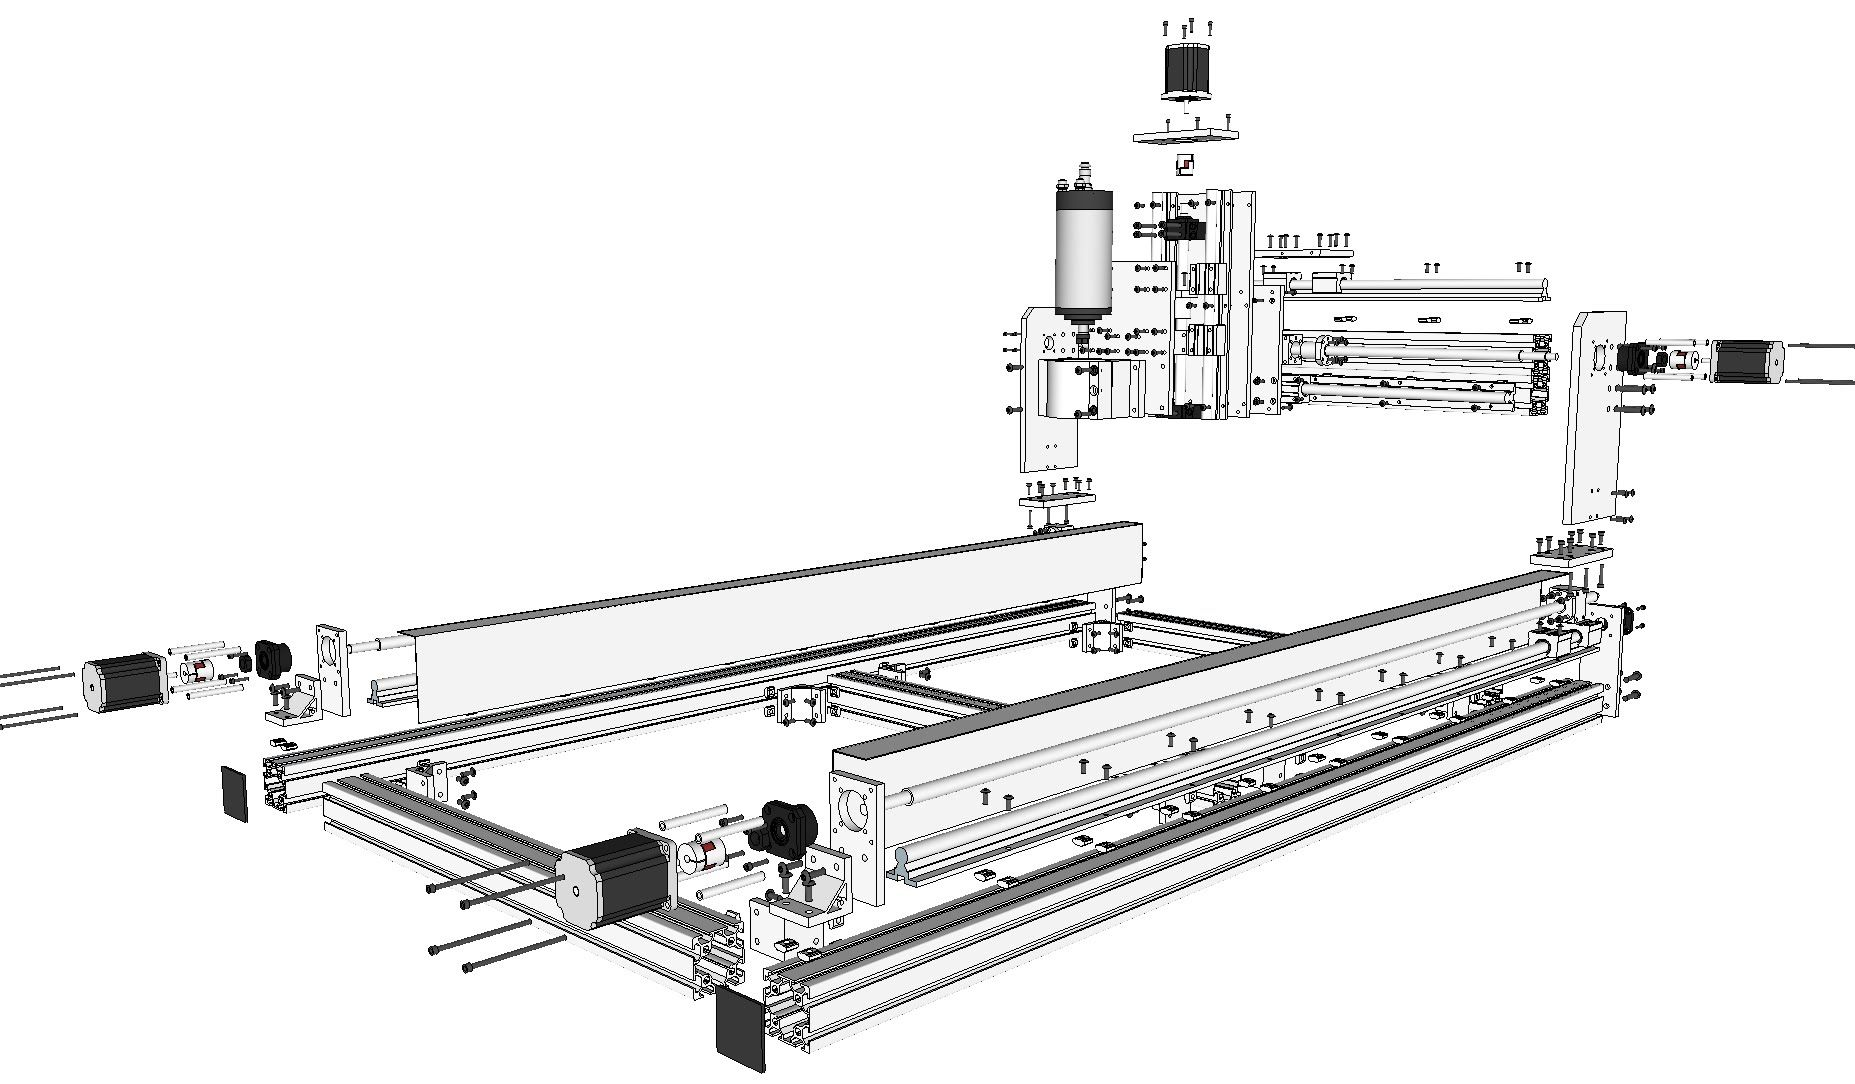 Id2cnc V 2 1 Machine Assembly Guide